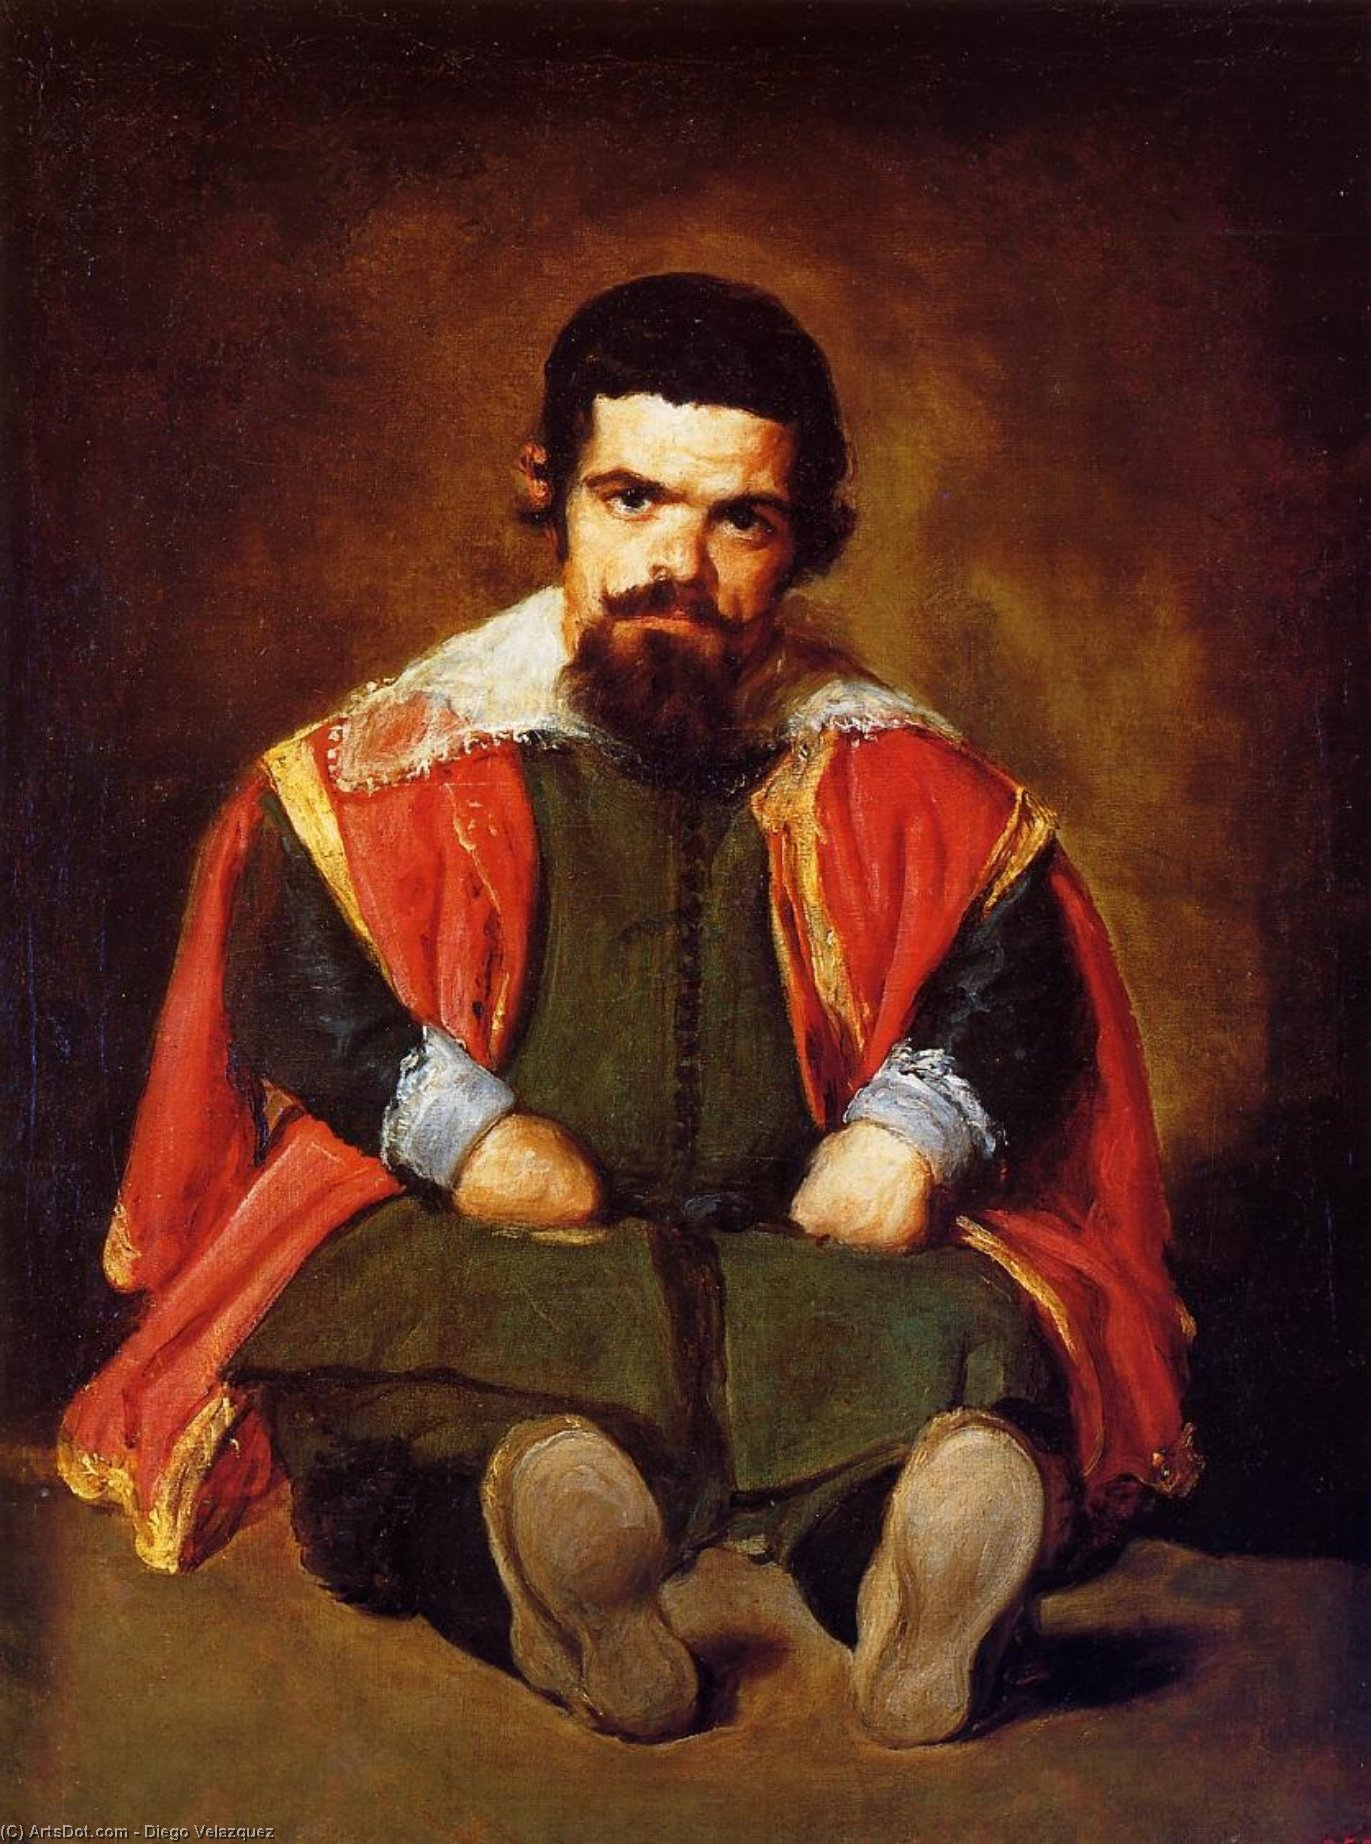 A Dwarf Sitting on the Floor (Sebastian de Morra) by Diego Velazquez (1599-1660, Spain)